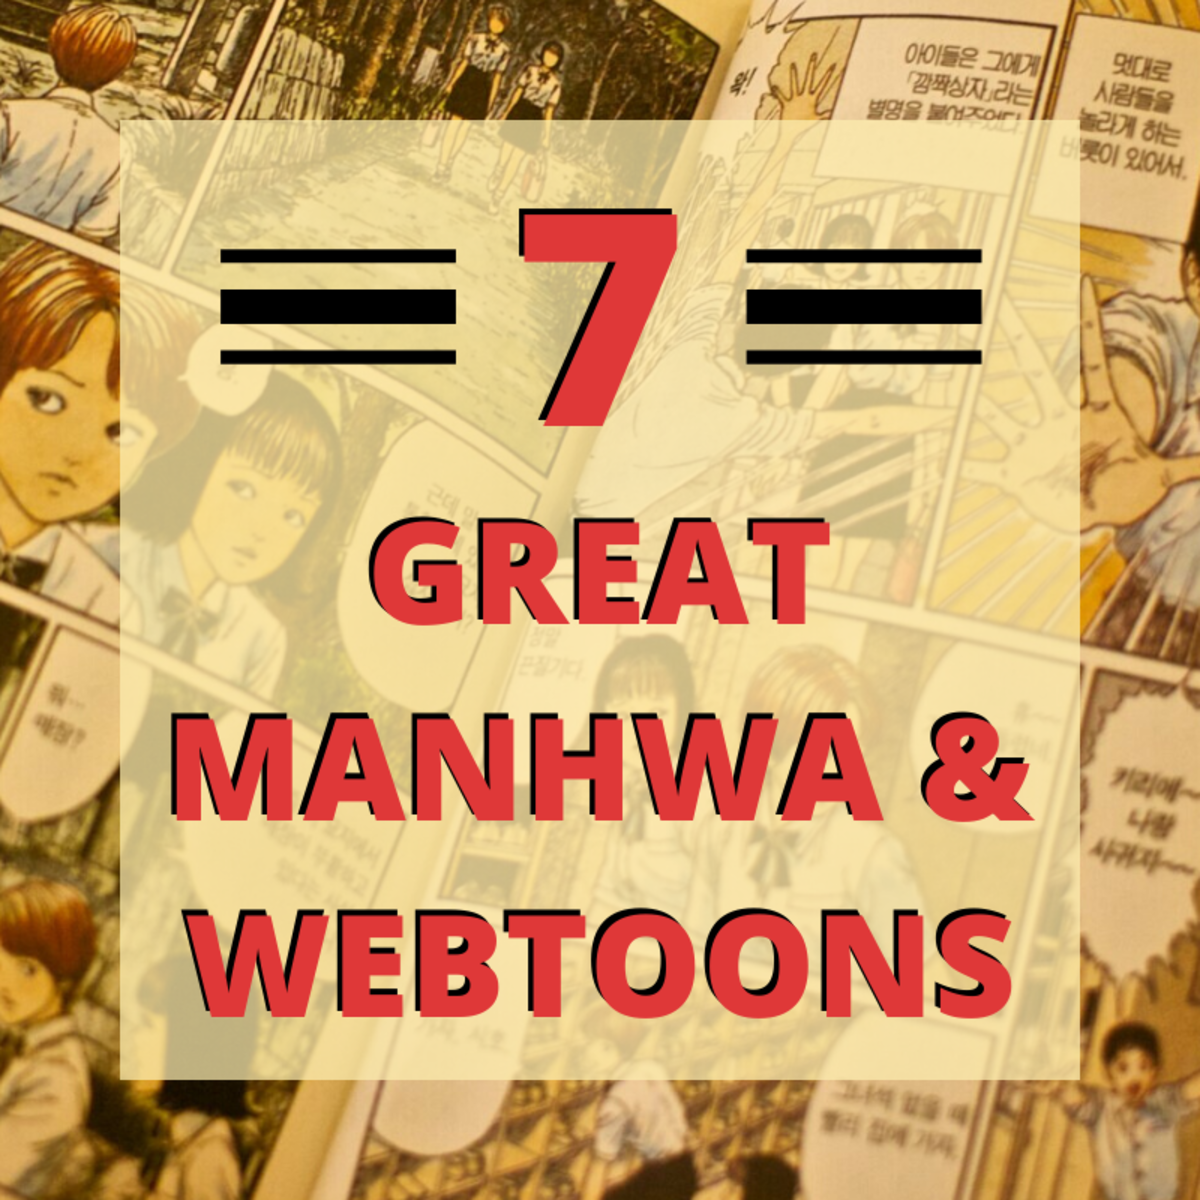 Top Manhwa and Webtoons: 7 Korean Comics to Check Out